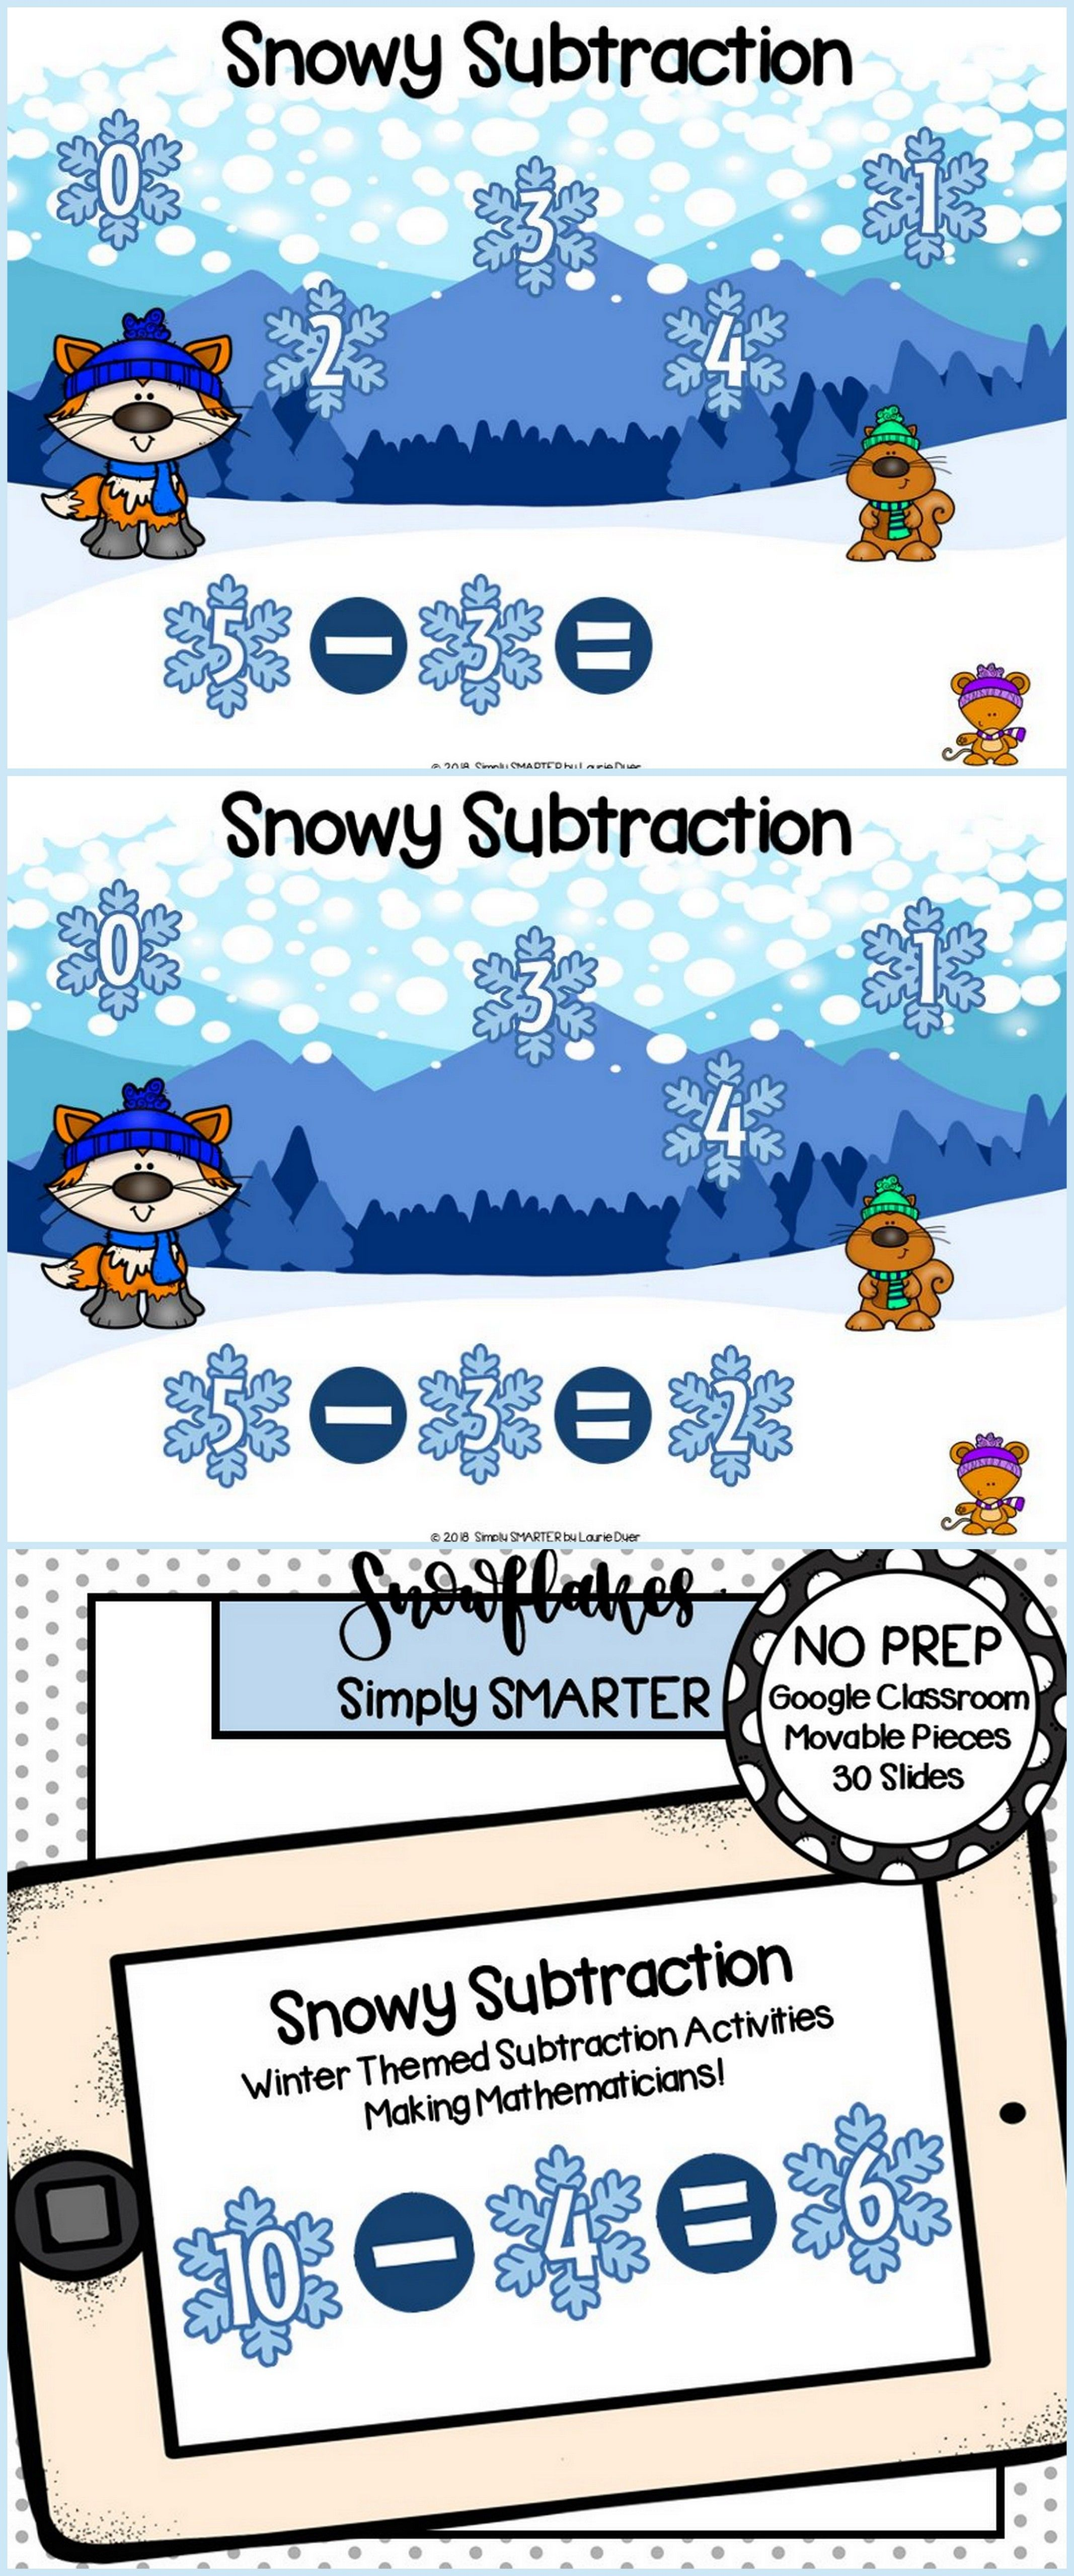 Winter Themed Subtraction Activities For Classroom